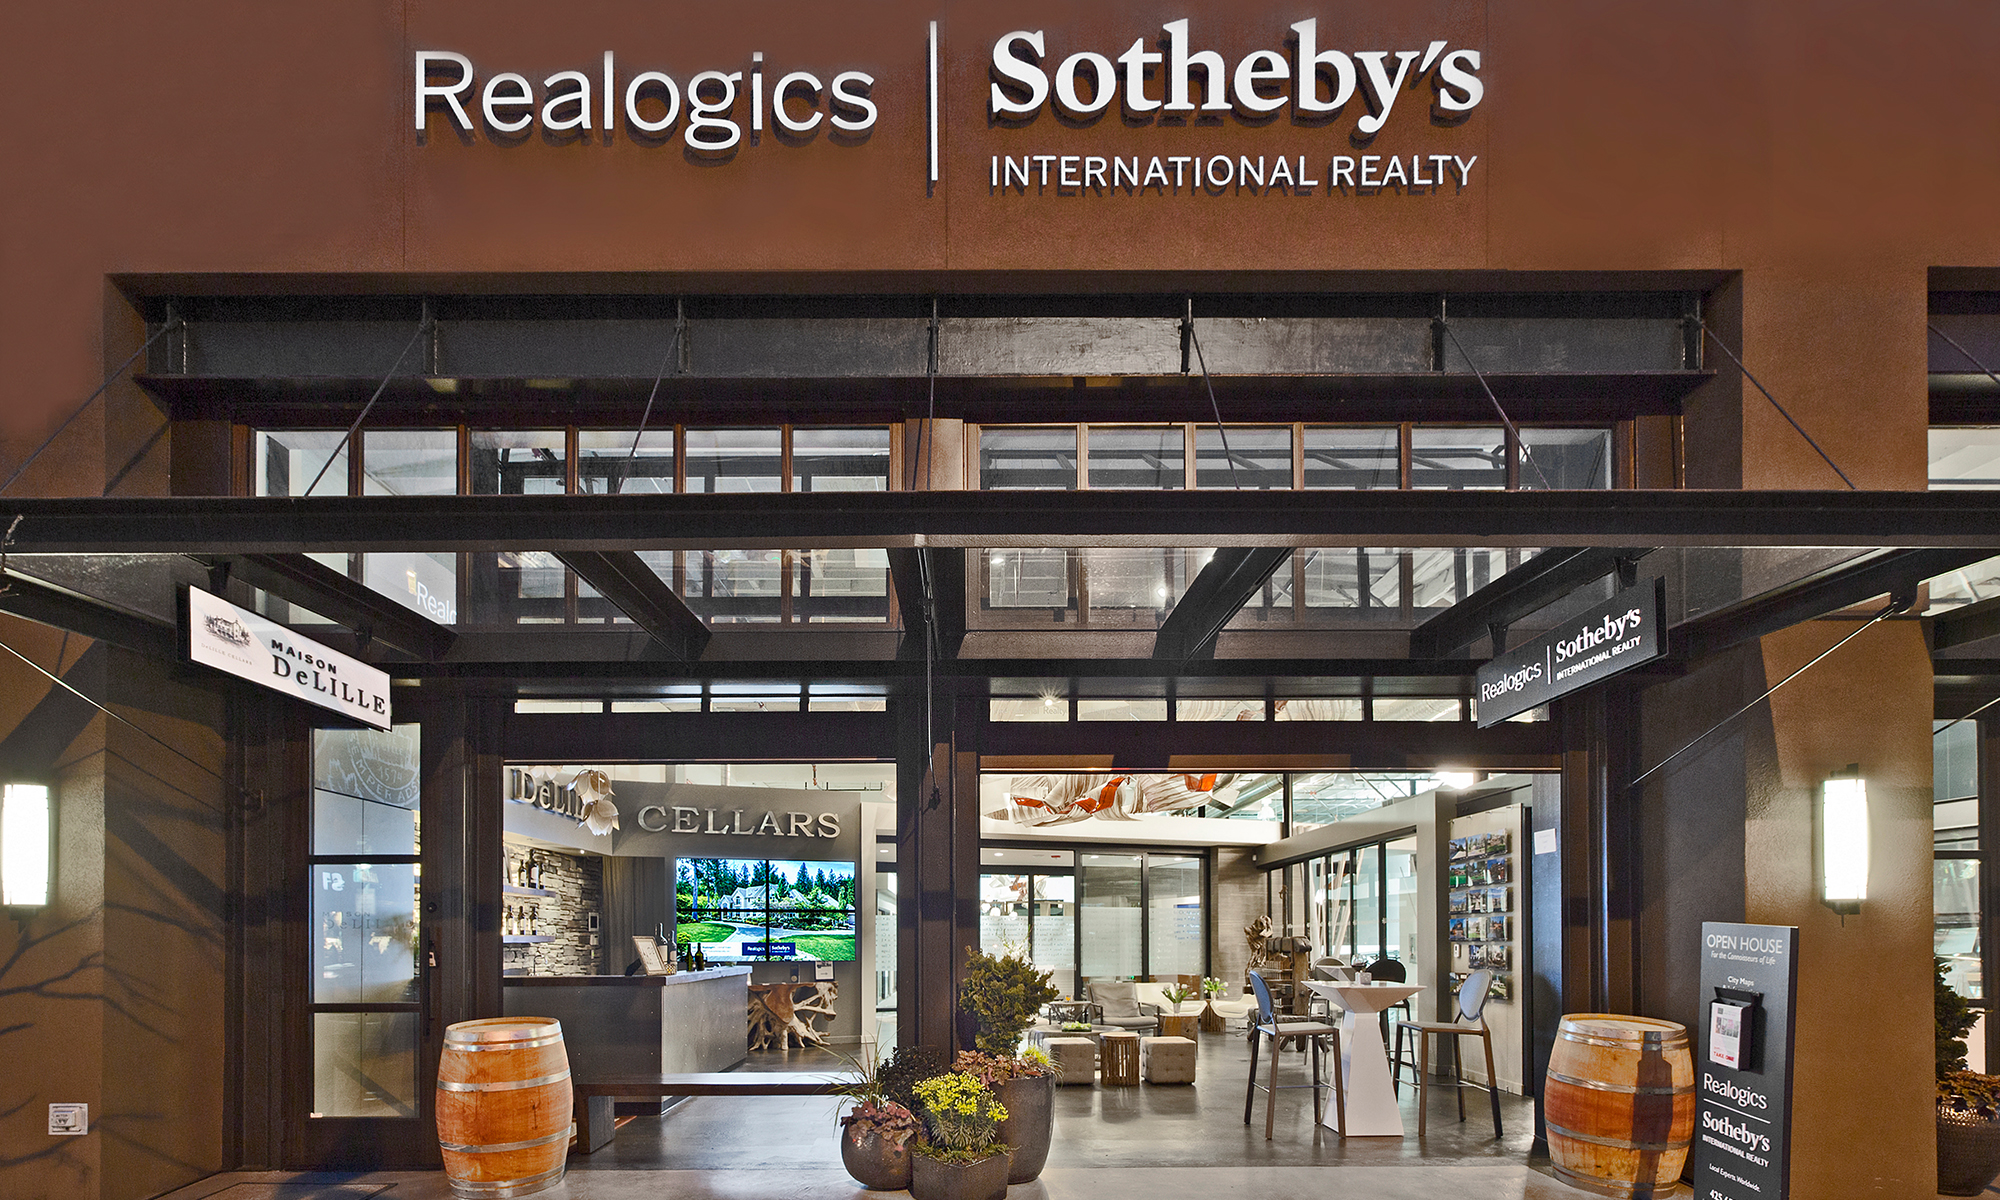 Realogics Sotheby's International Realty